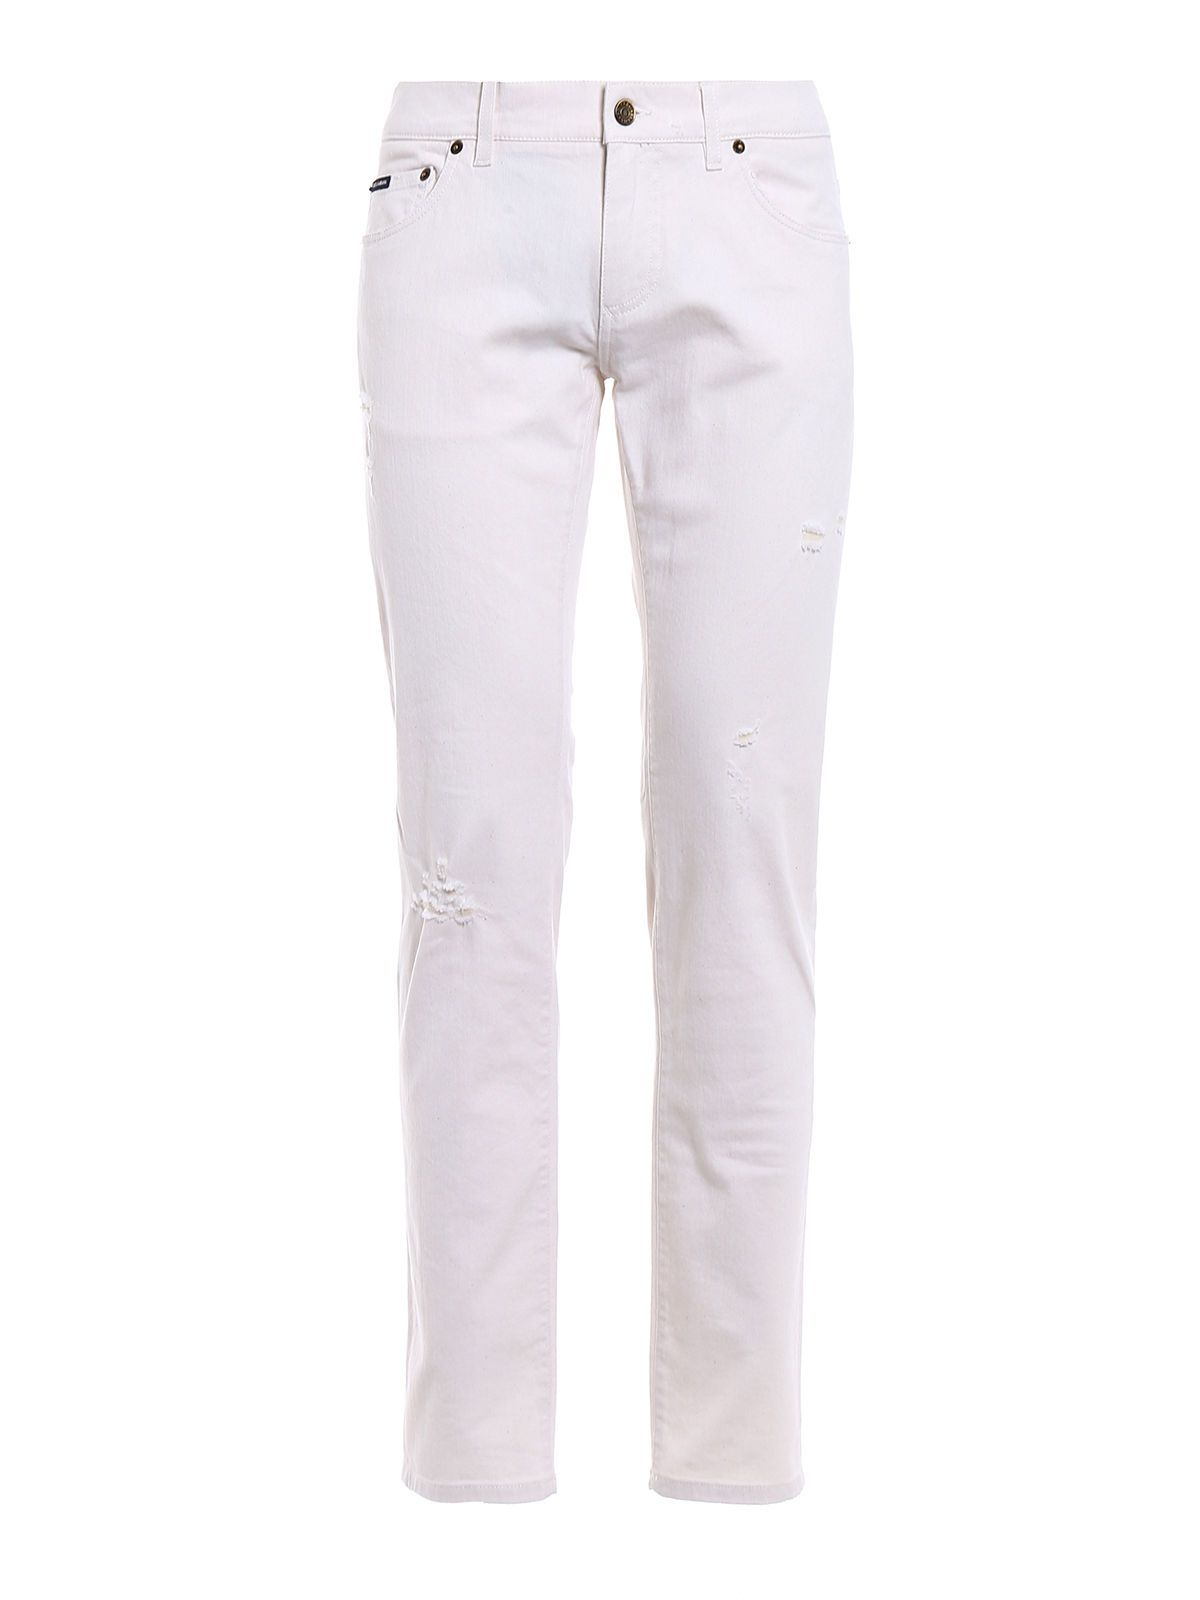 Dolce & Gabbana Stretch White Denim